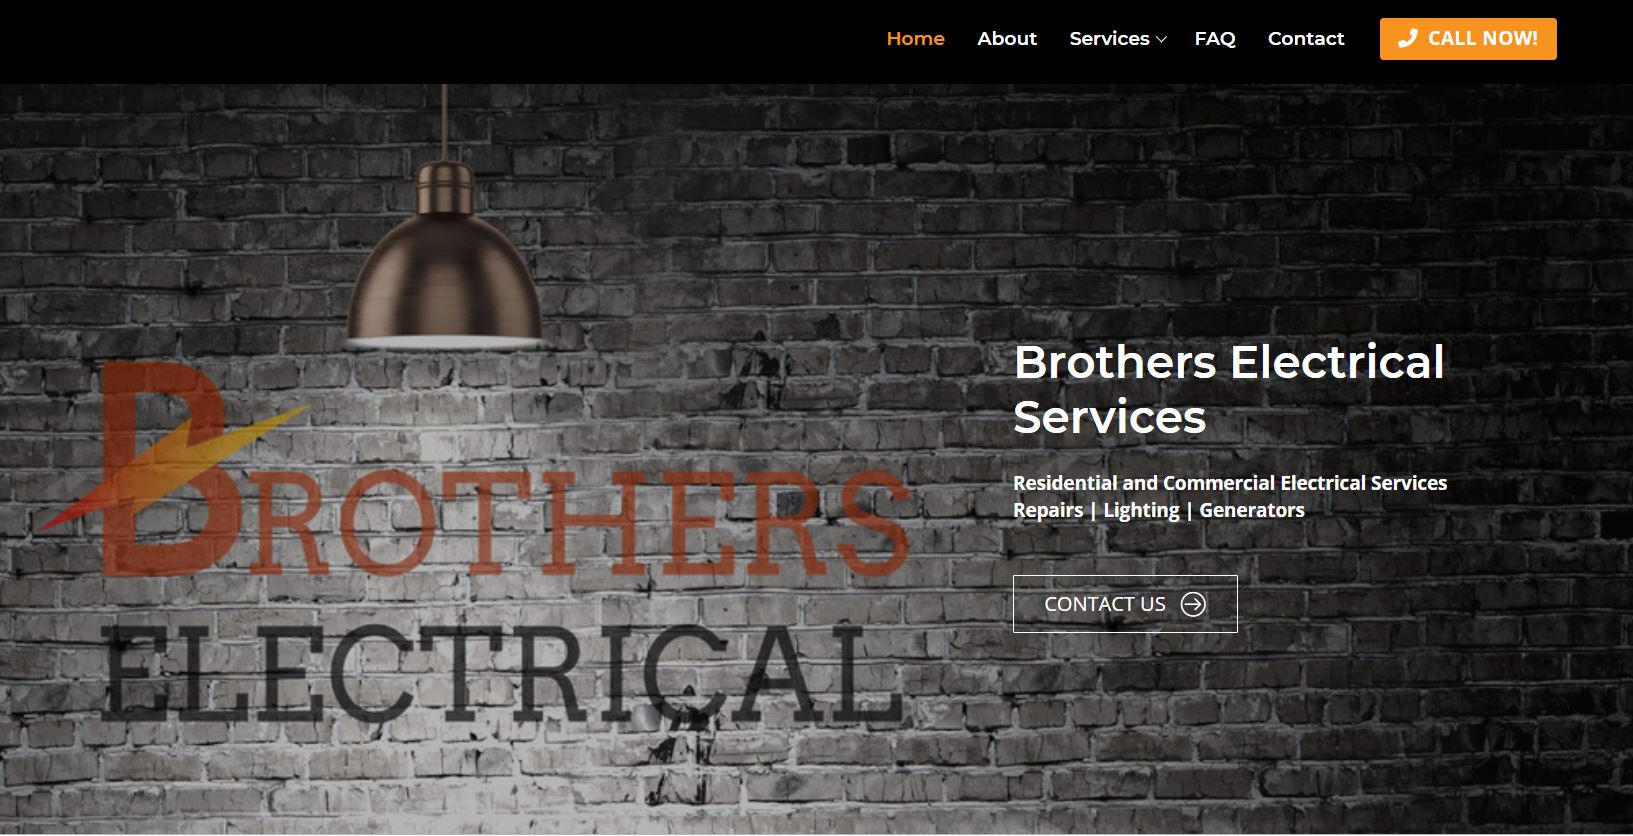 Brothers Electrical Services